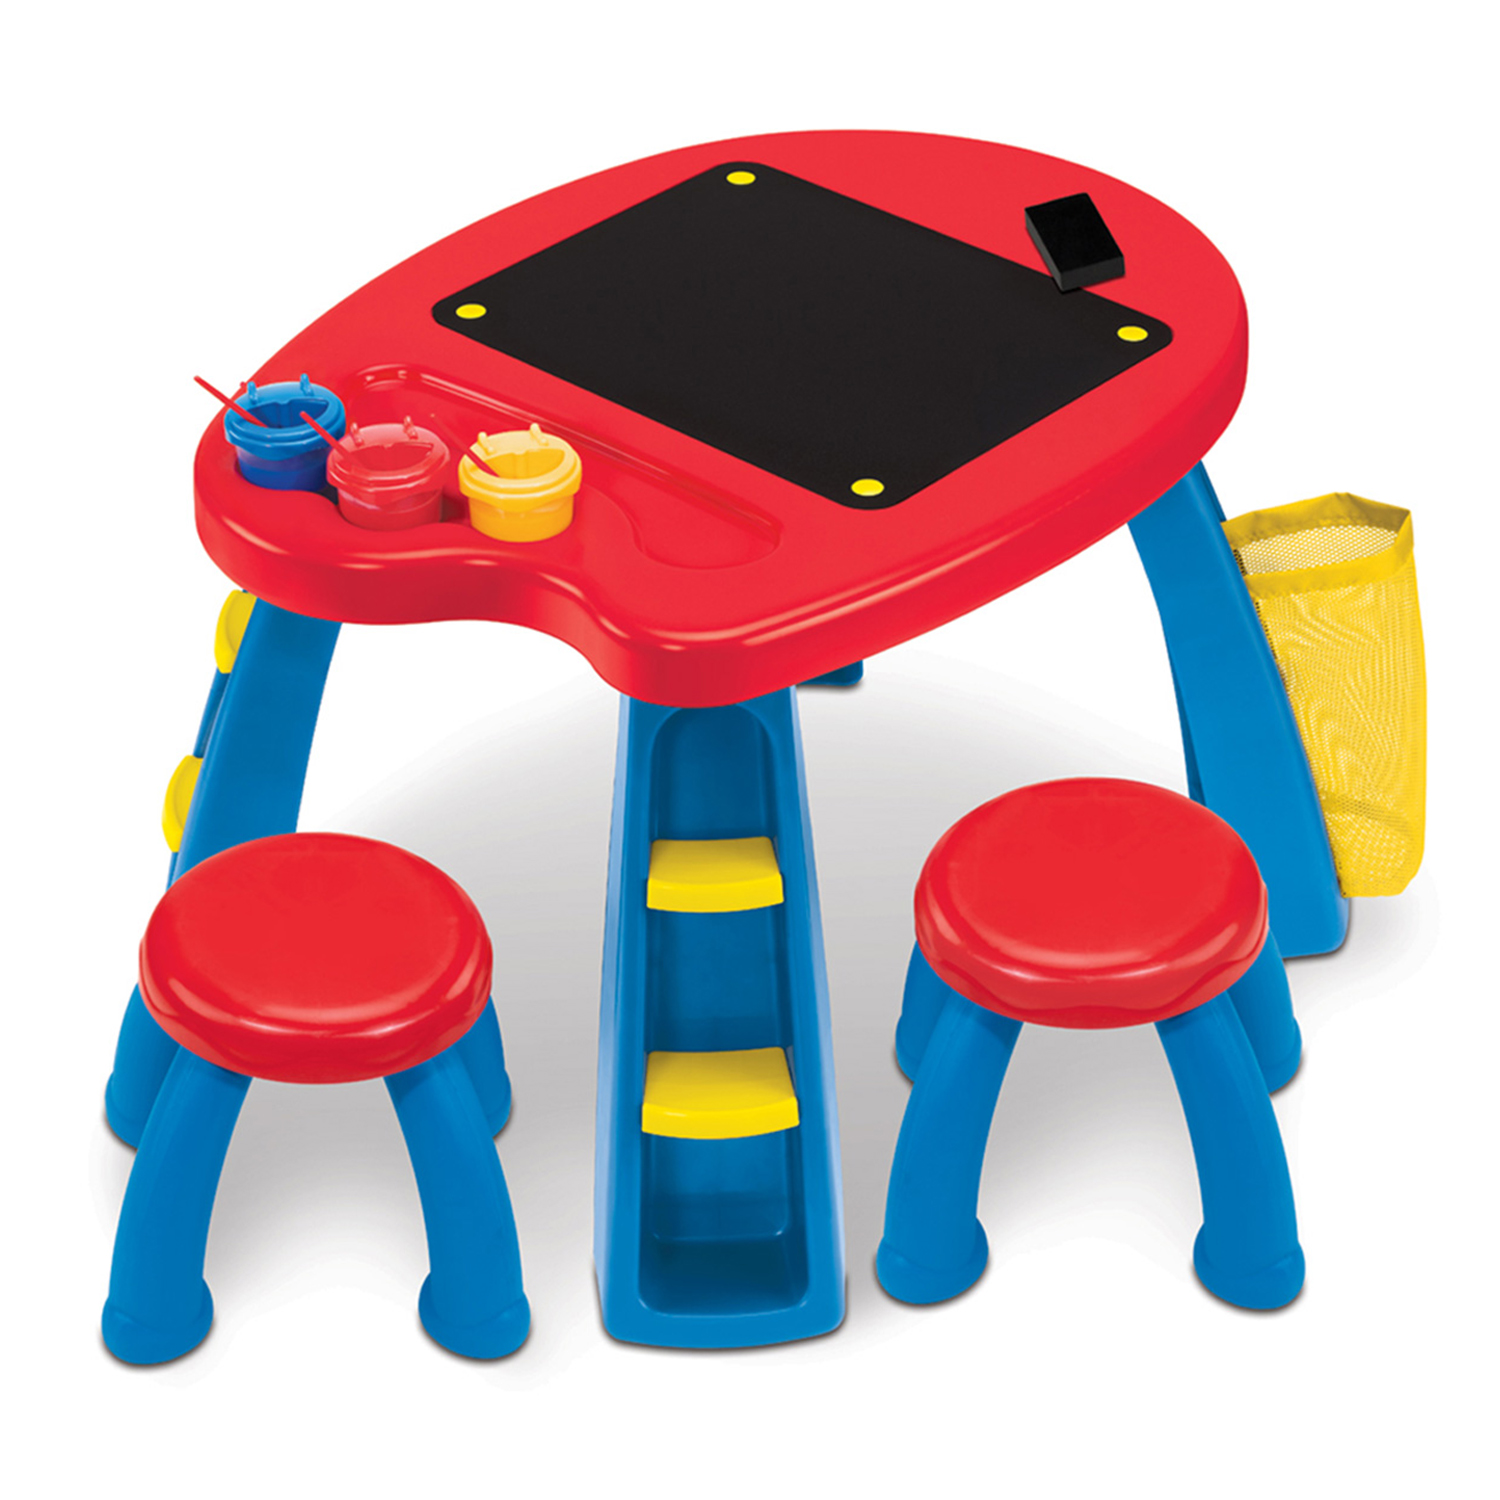 Crayola Creativity Play Station